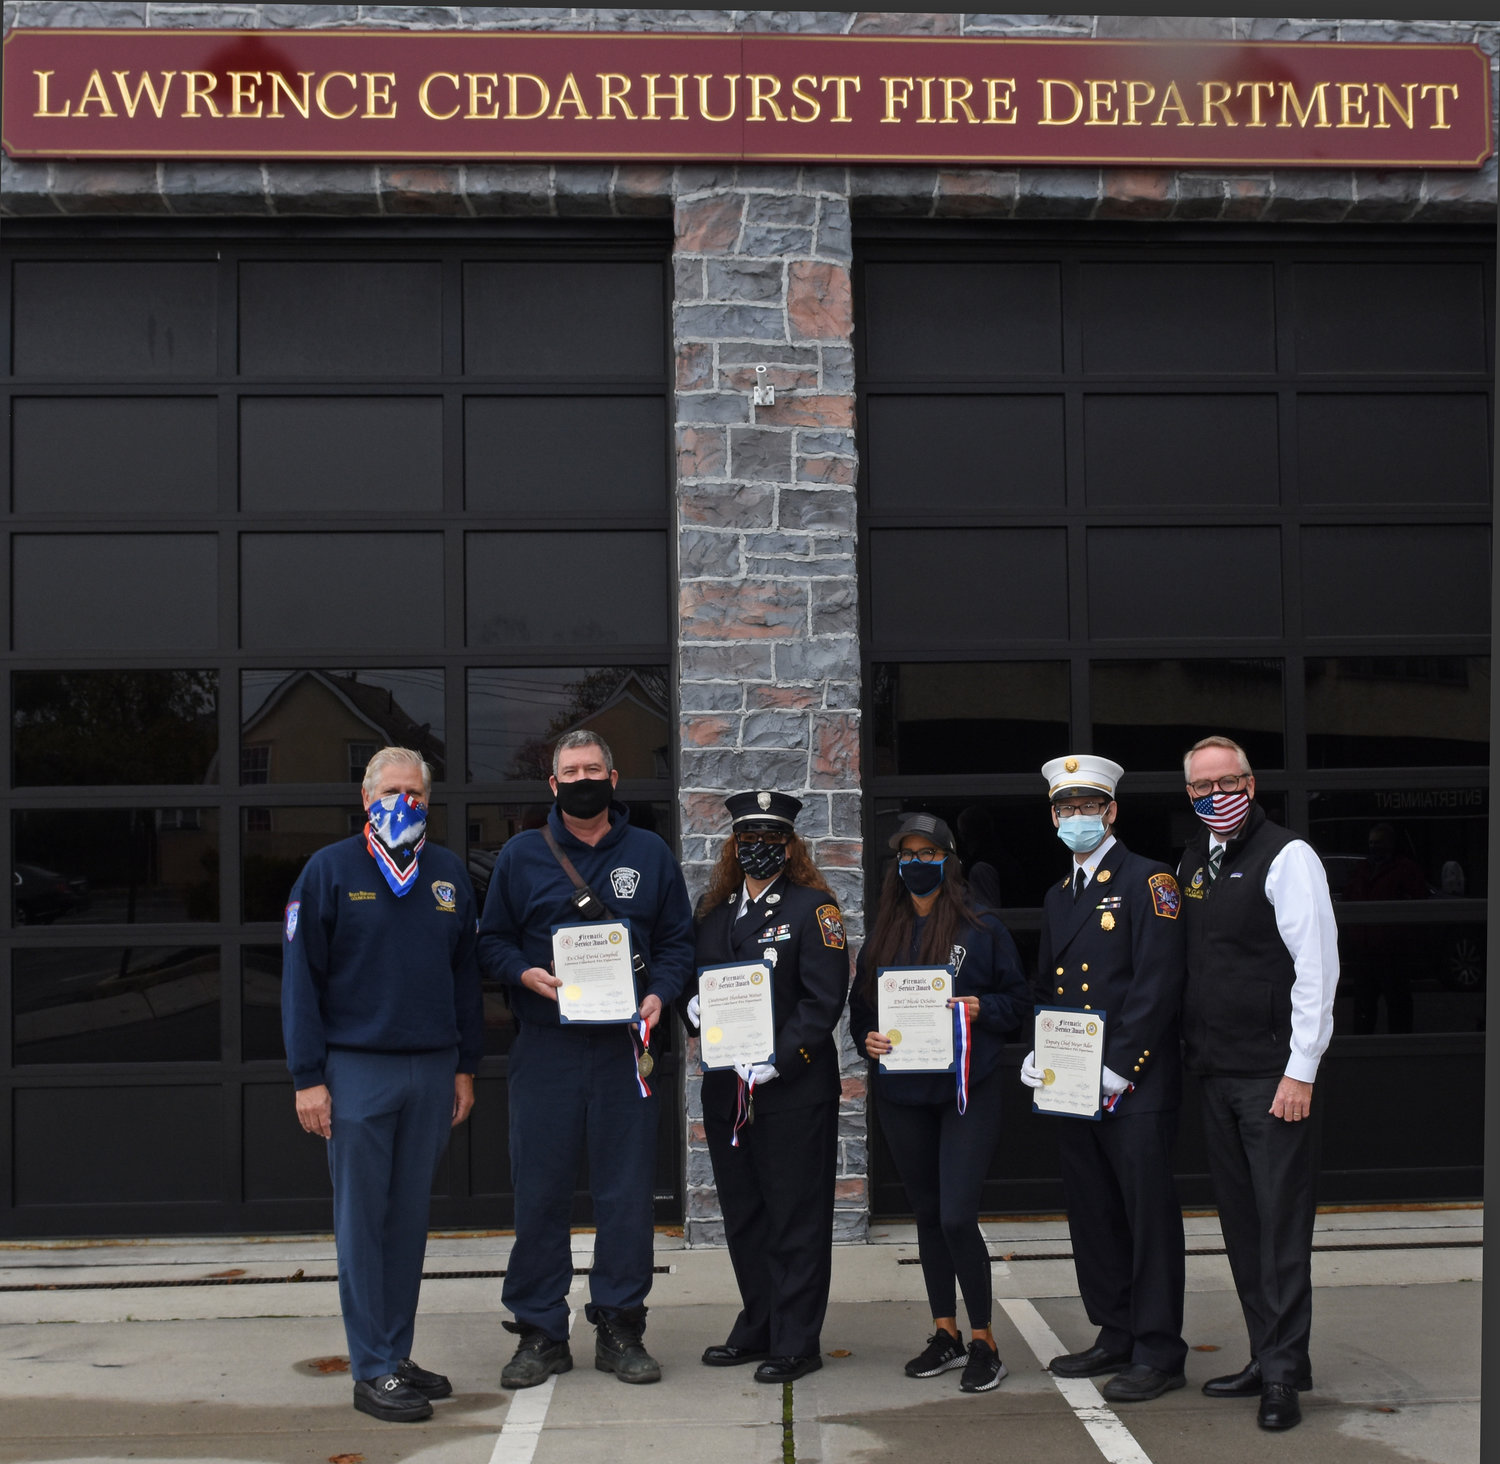 Hempstead town officials presented firematic awards to Lawrence-Cedarhurst Fire Department members. From left were Councilman Bruce Blakeman, Ex-Chief David Campell, Lt. Shoshona Weiner, EMT Nicole Disibio and 2nd Deputy Chief Meyer Adler.